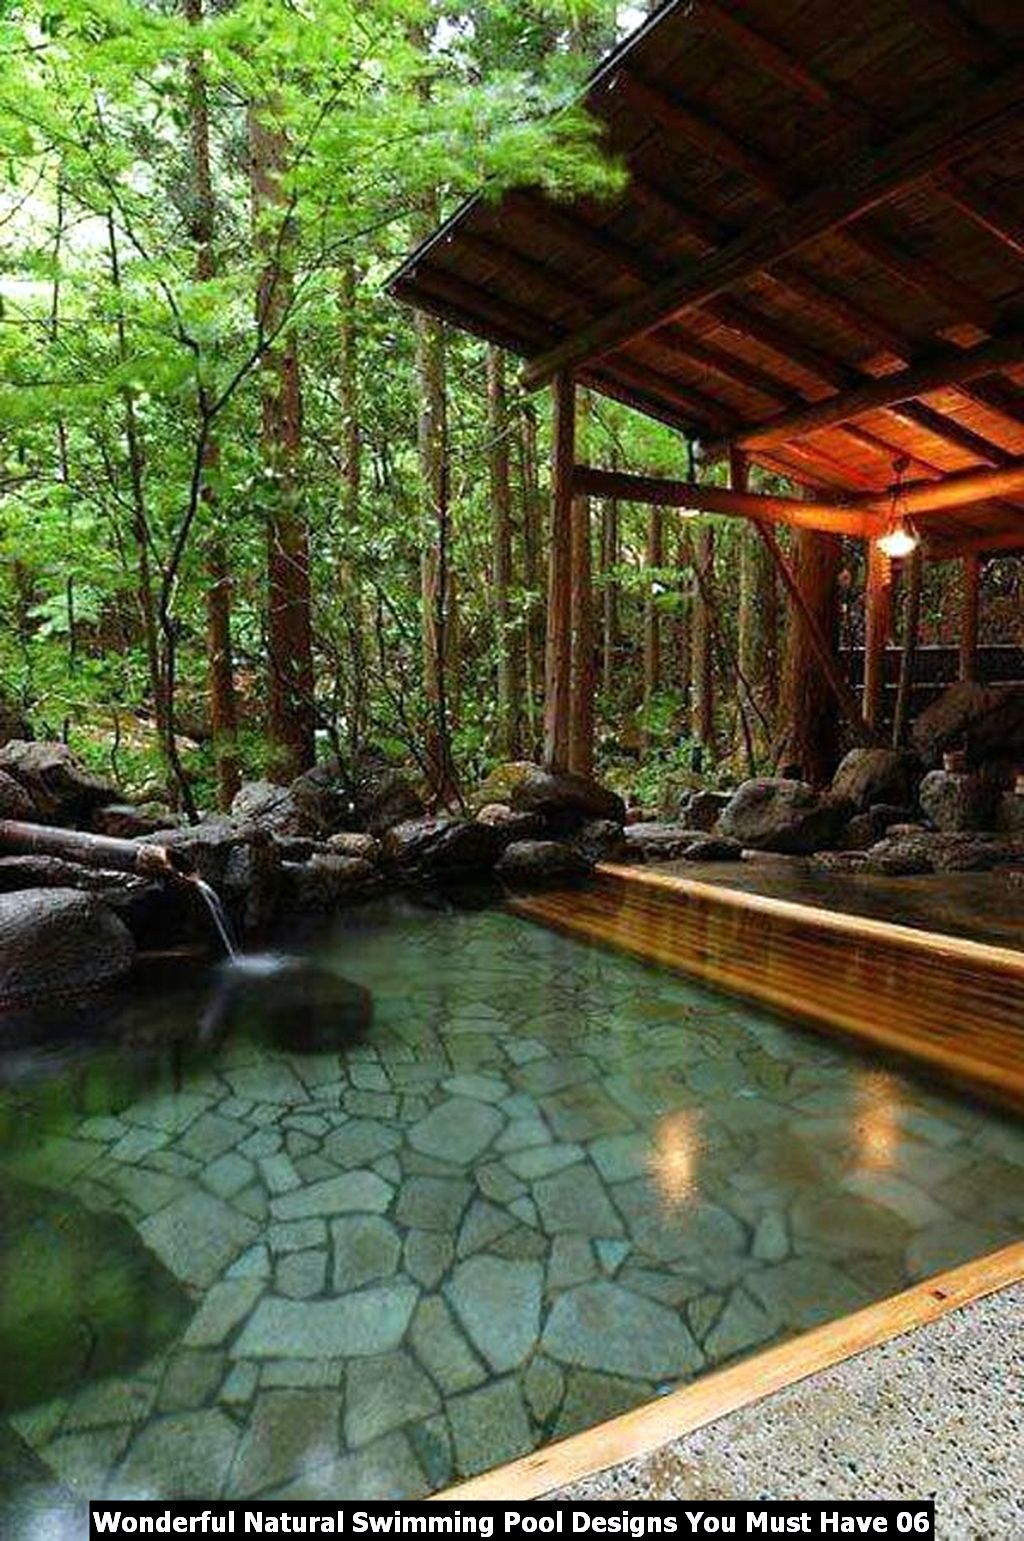 Wonderful Natural Swimming Pool Designs You Must Have 06